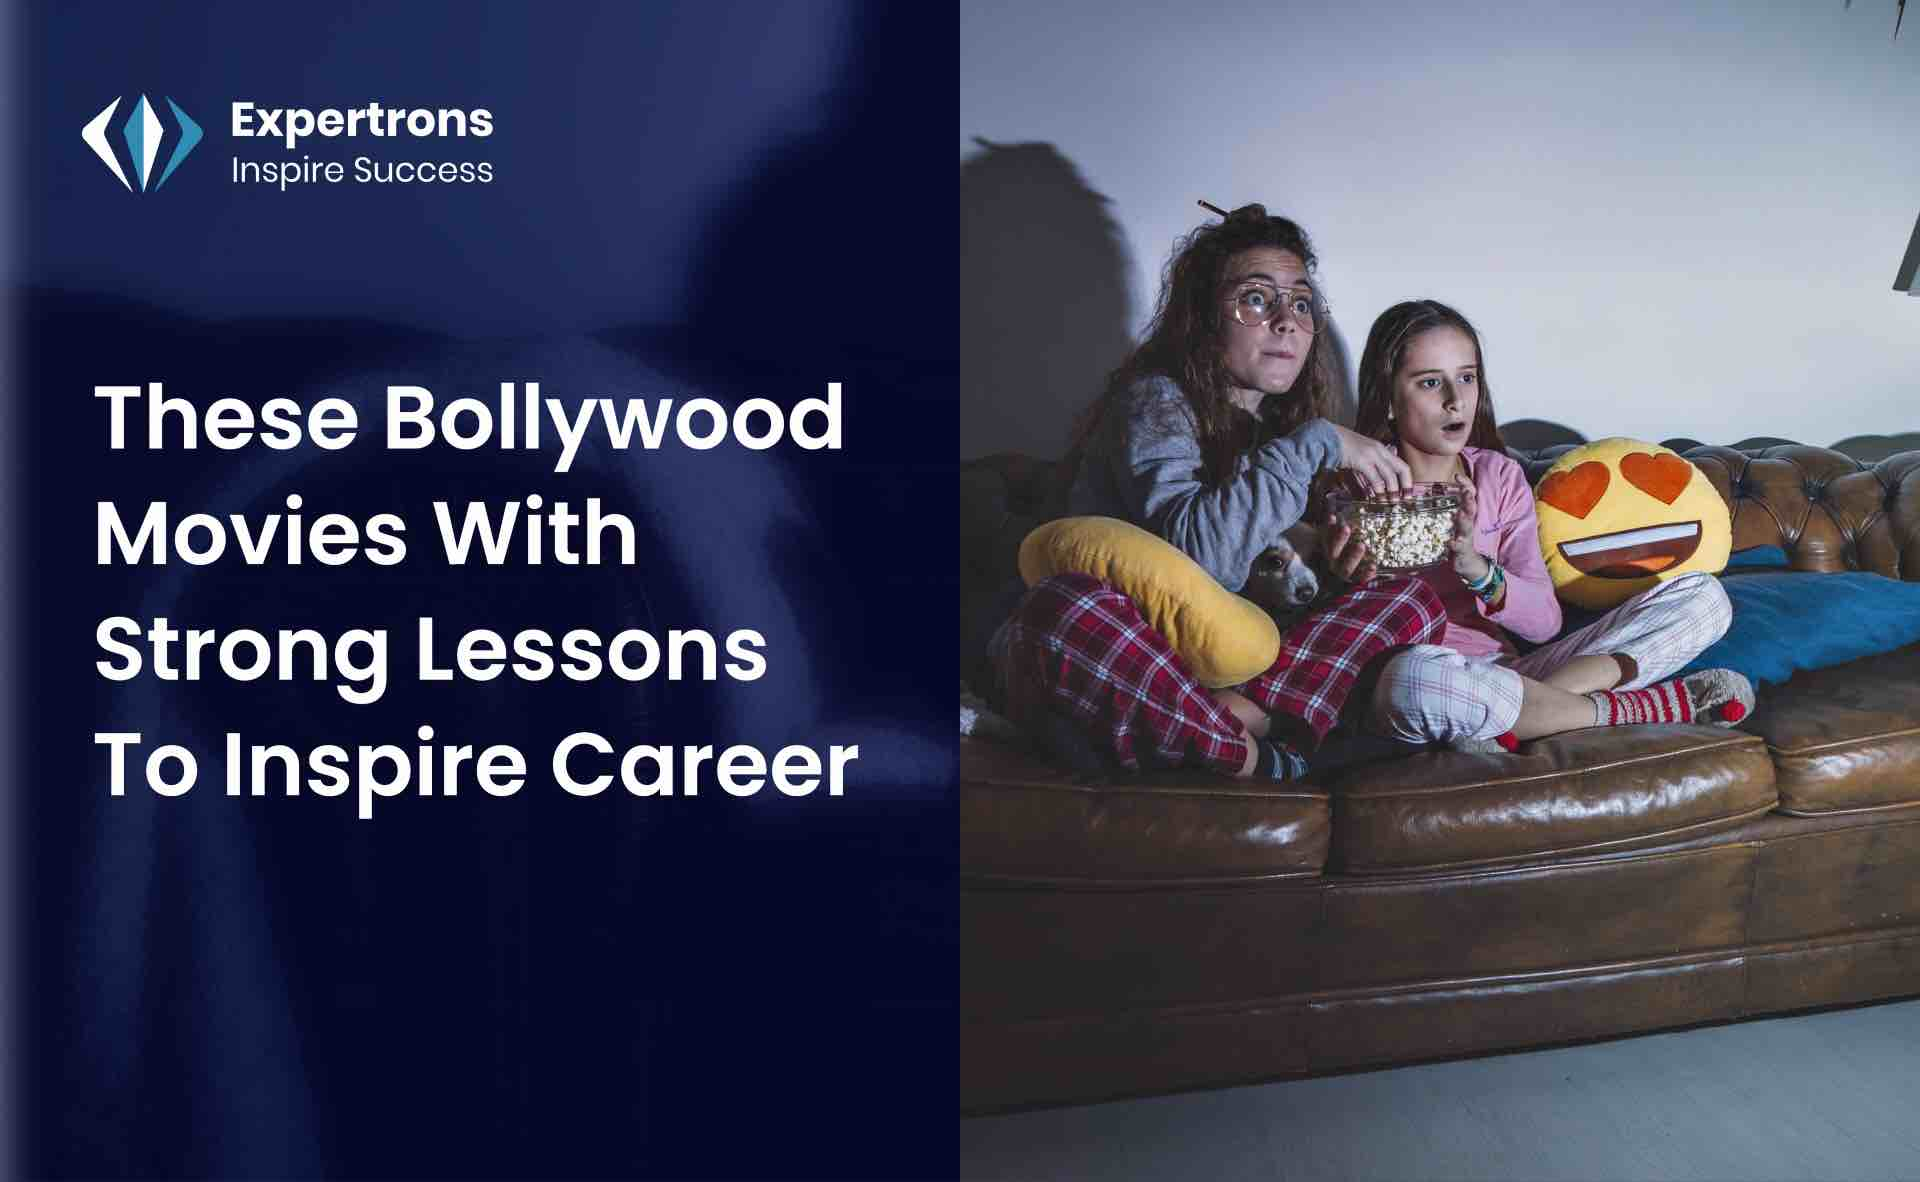 inspirational bollywood movies, best motivational movies bollywood, best inspirational movies bollywood, motivational movies in bollywood